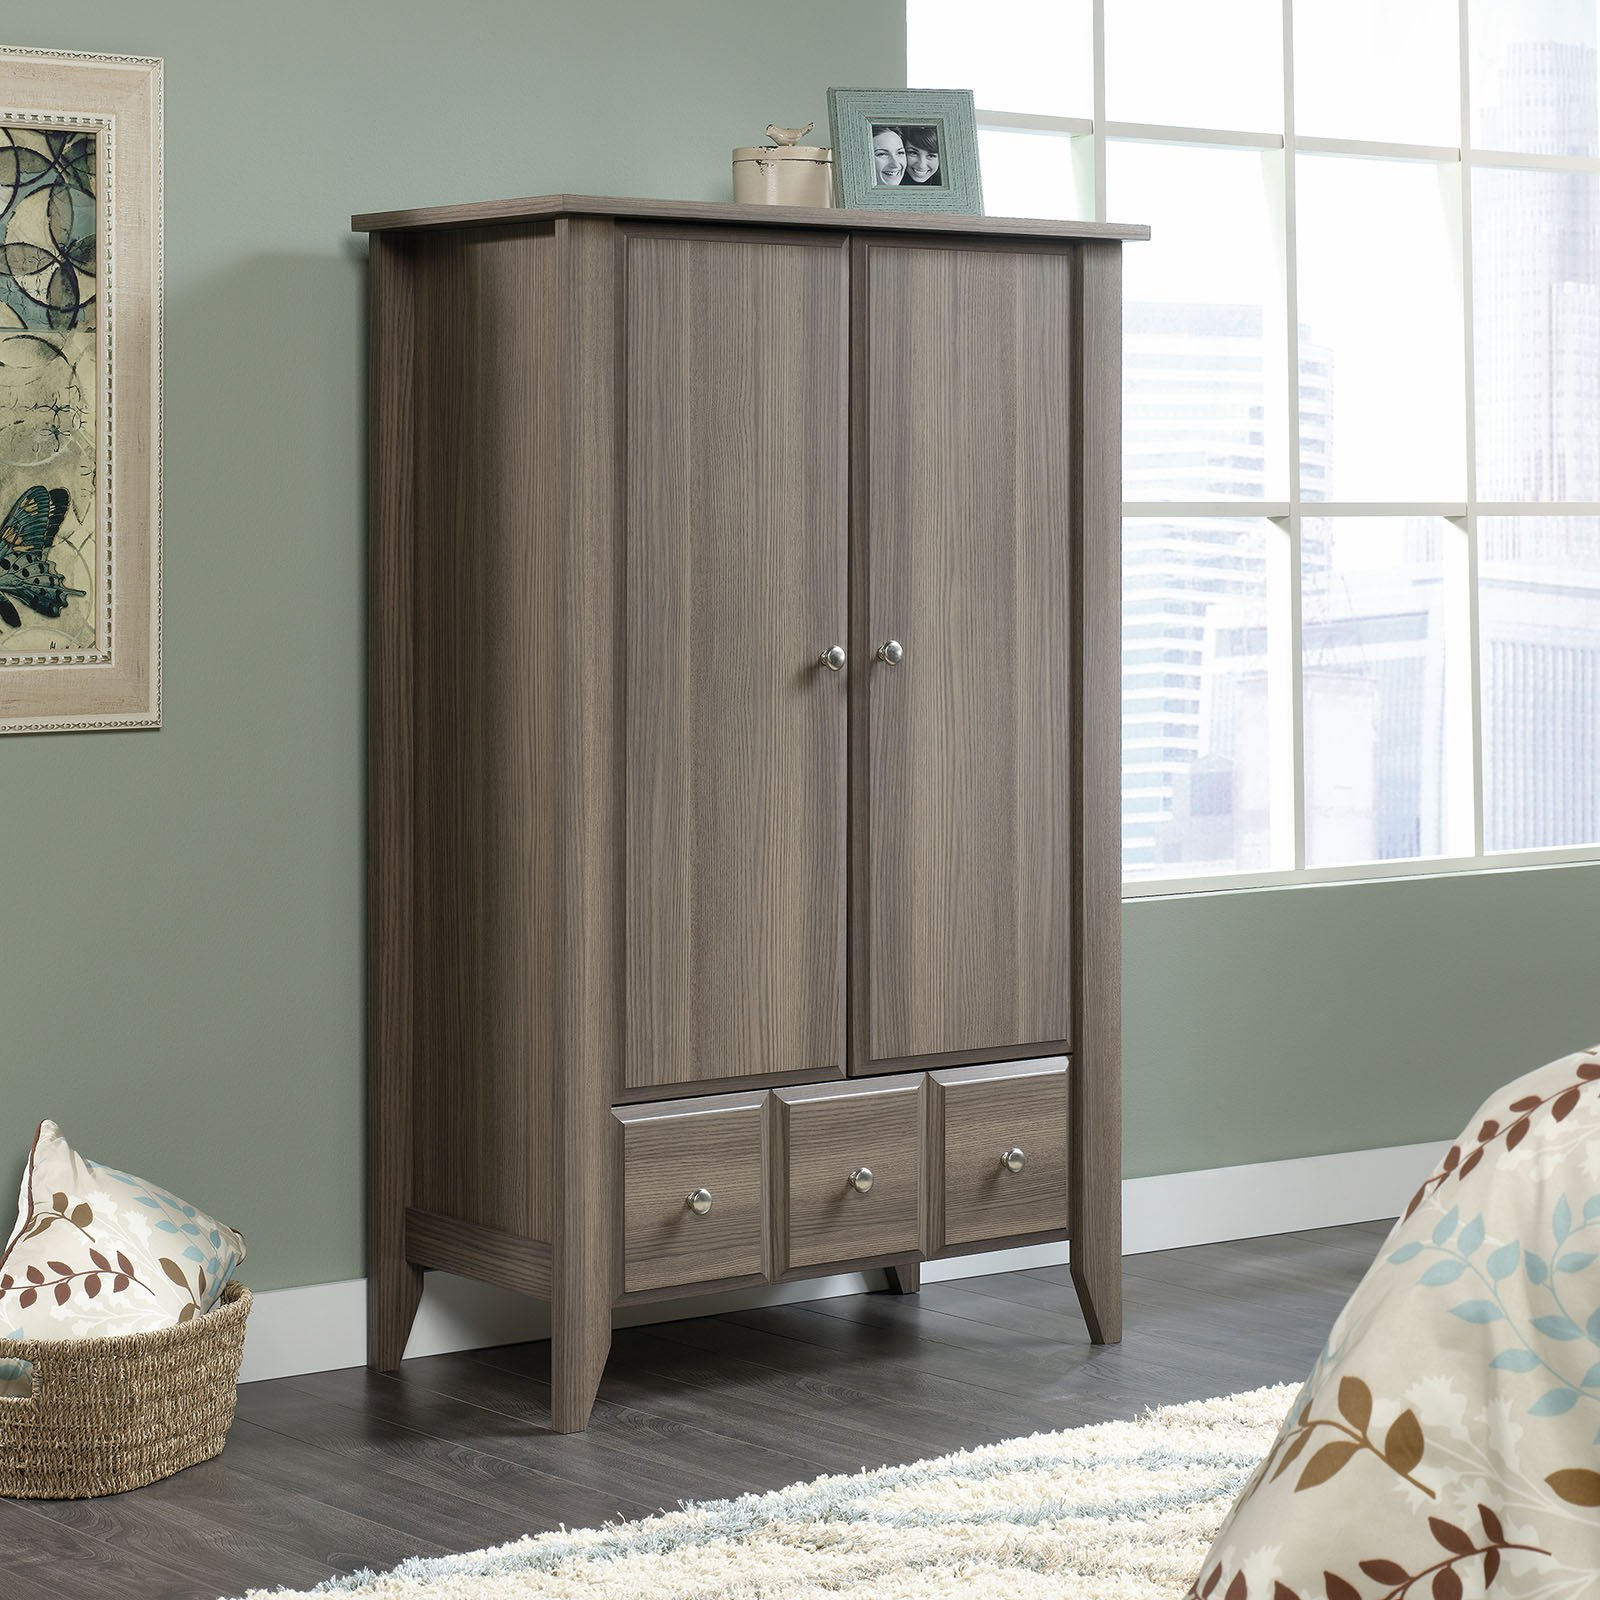 Sauder Shoal Creek Armoire - Diamond Ash